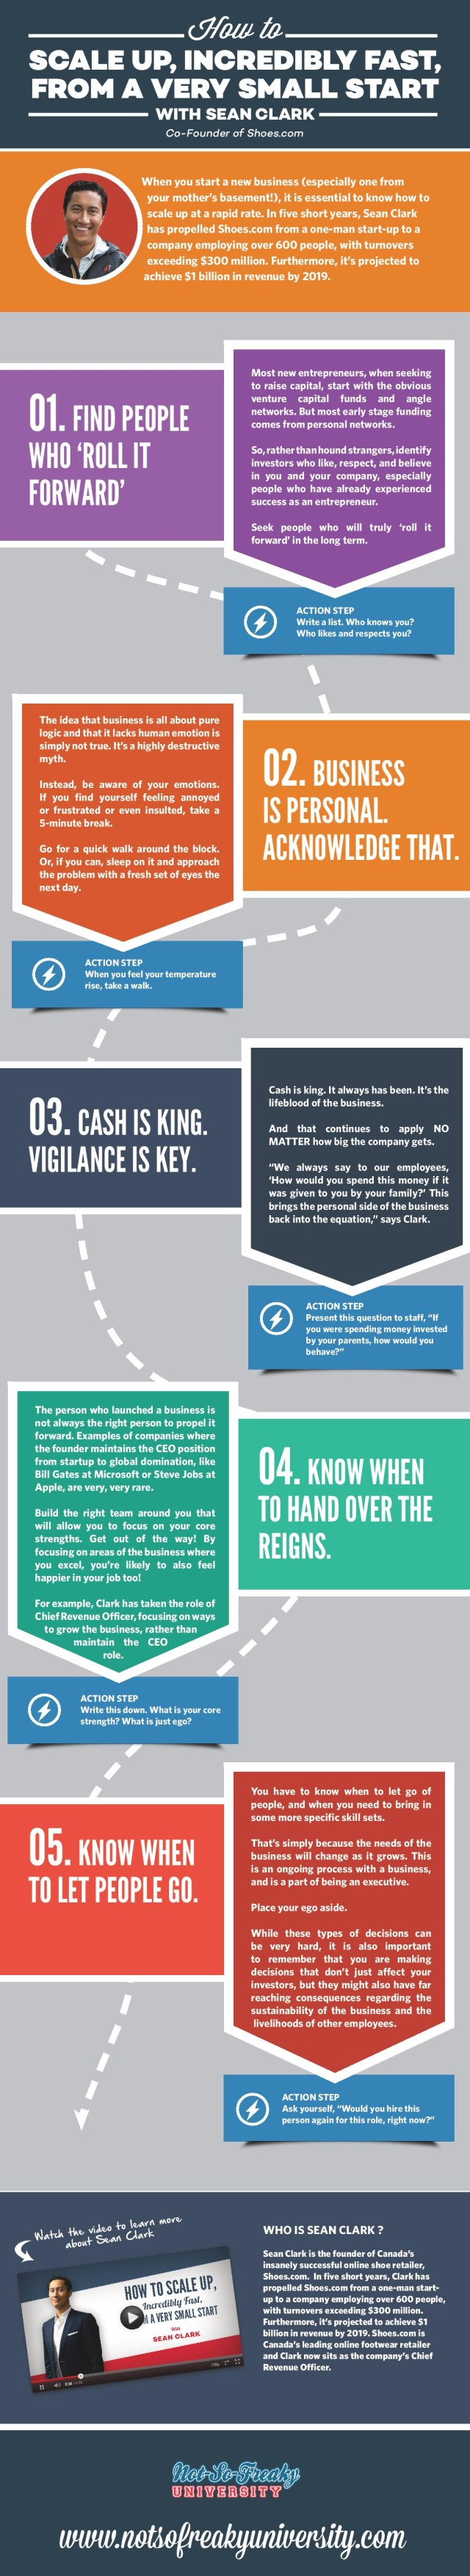 sean clark - infographic - NSFU 01-page-001(1)